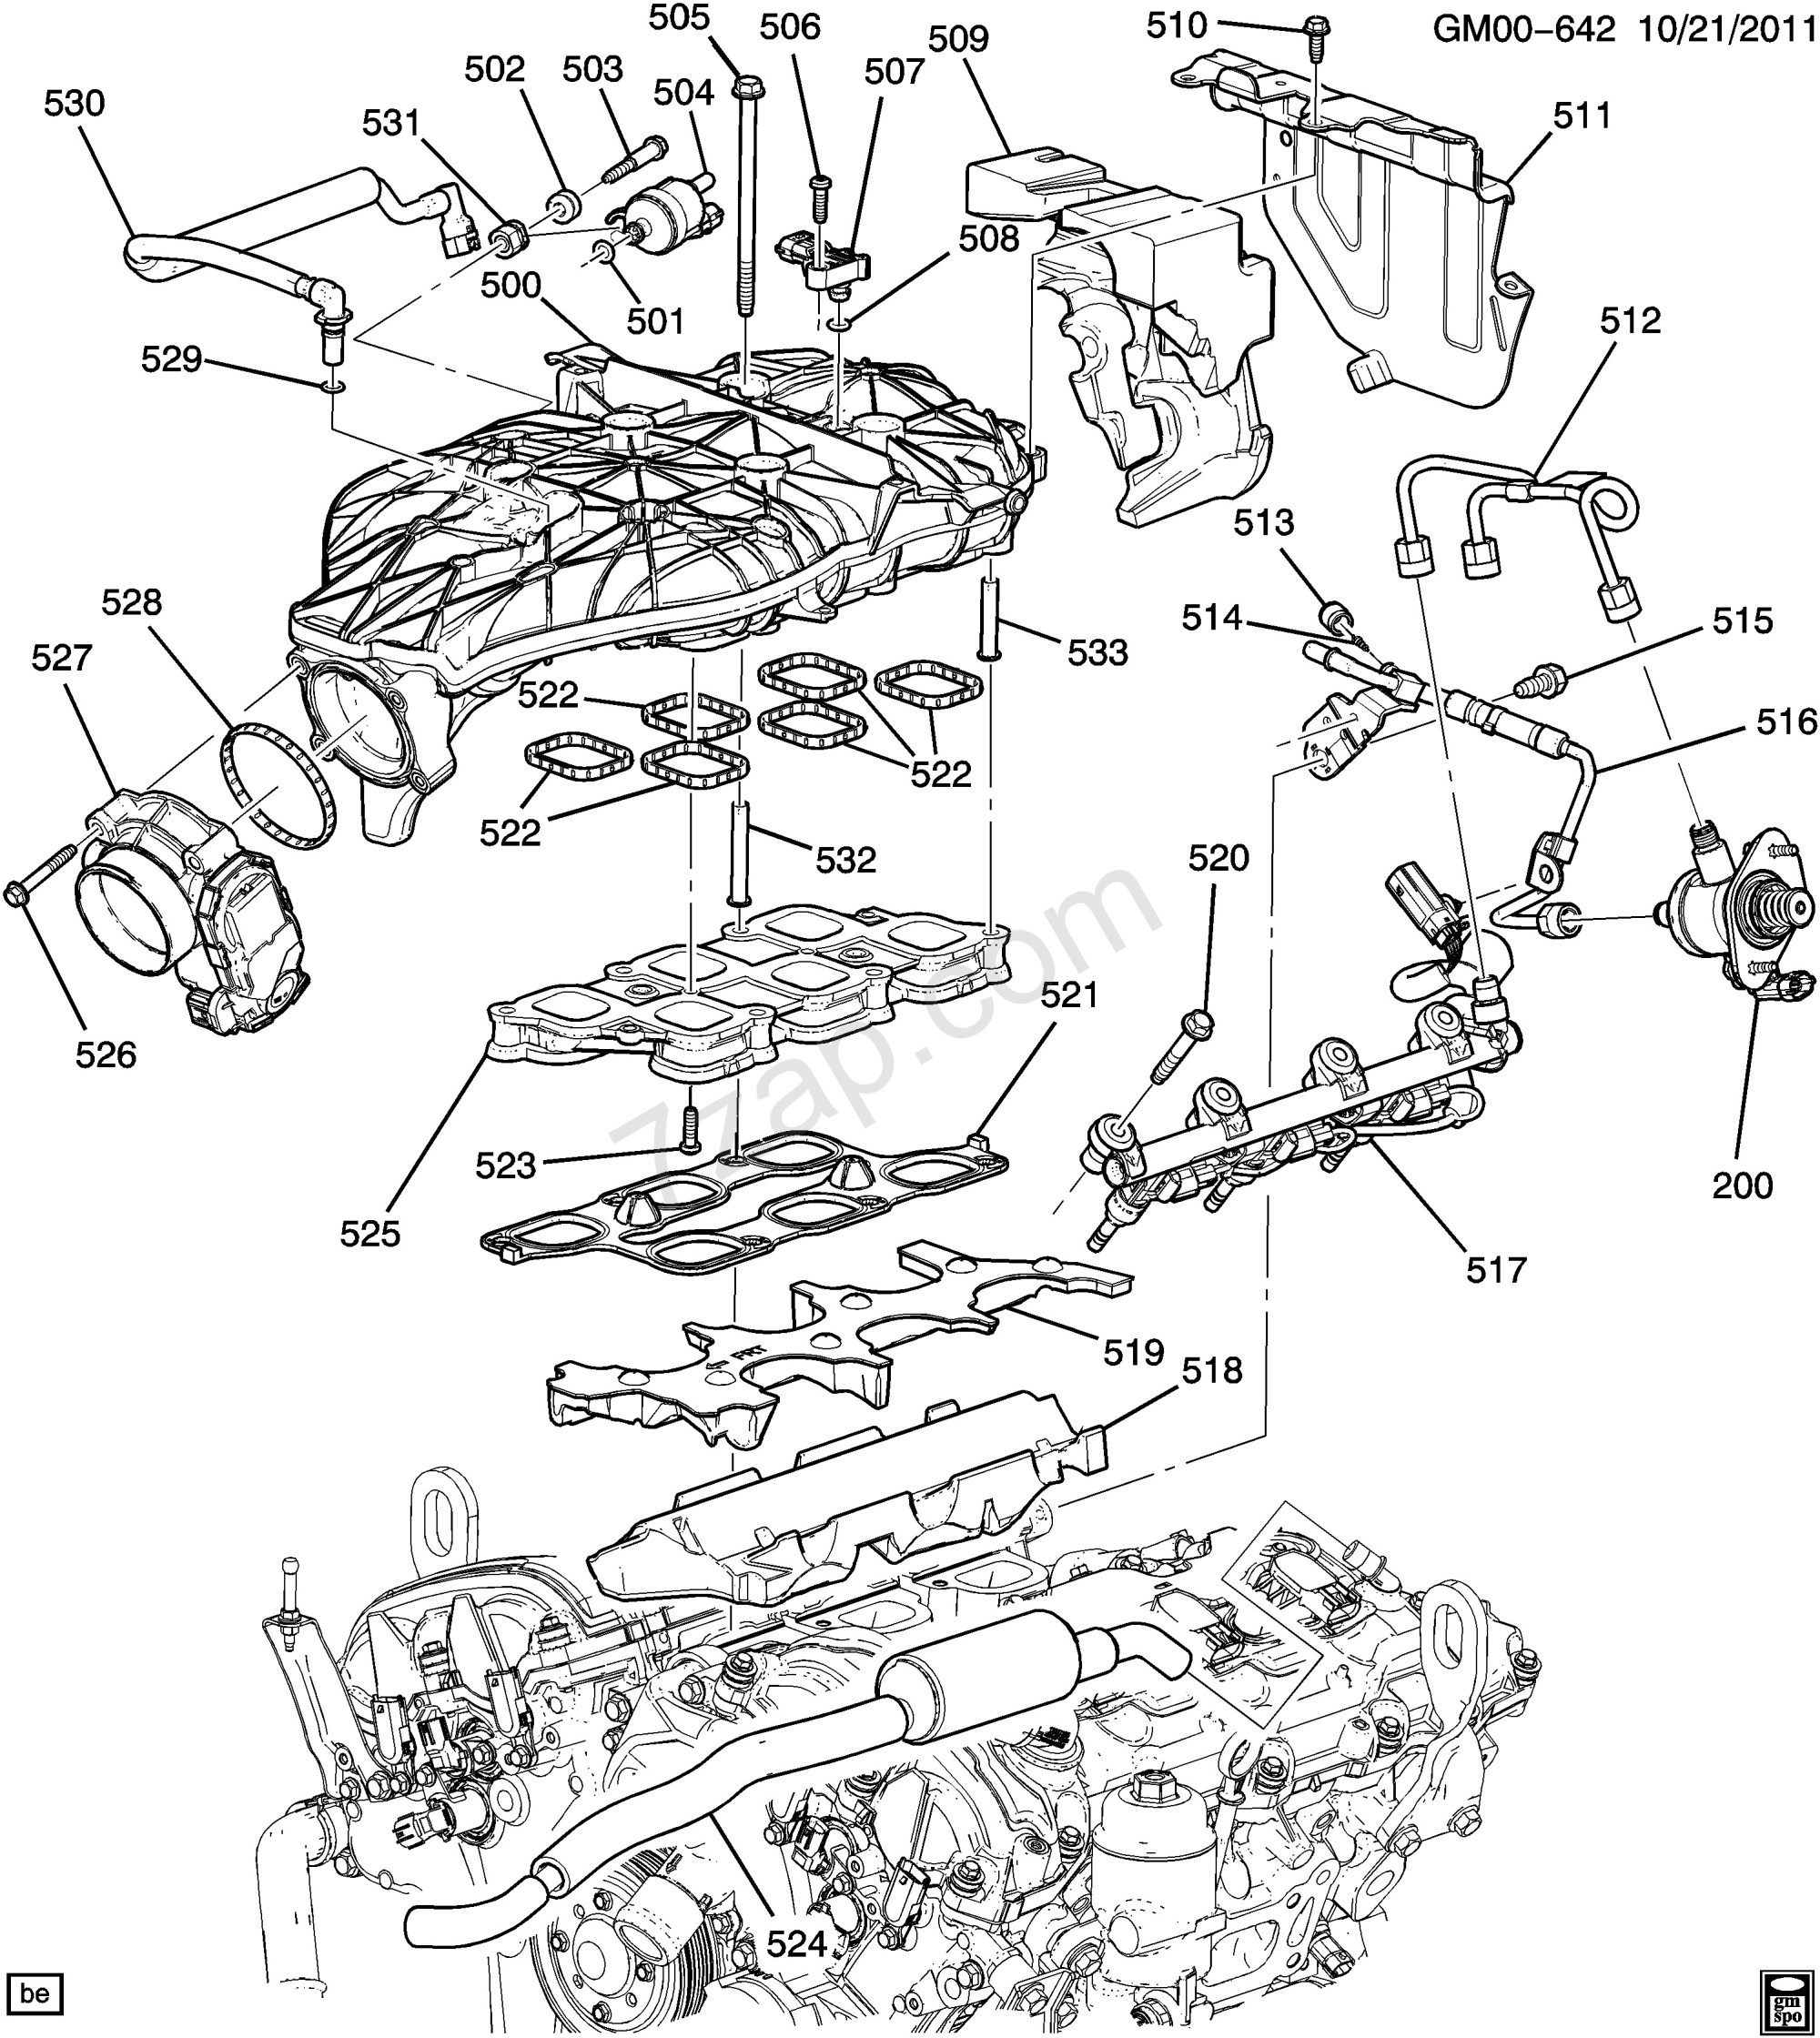 hight resolution of chrysler engine diagram for 2015 wiring diagram details chrysler engine diagram for 2015